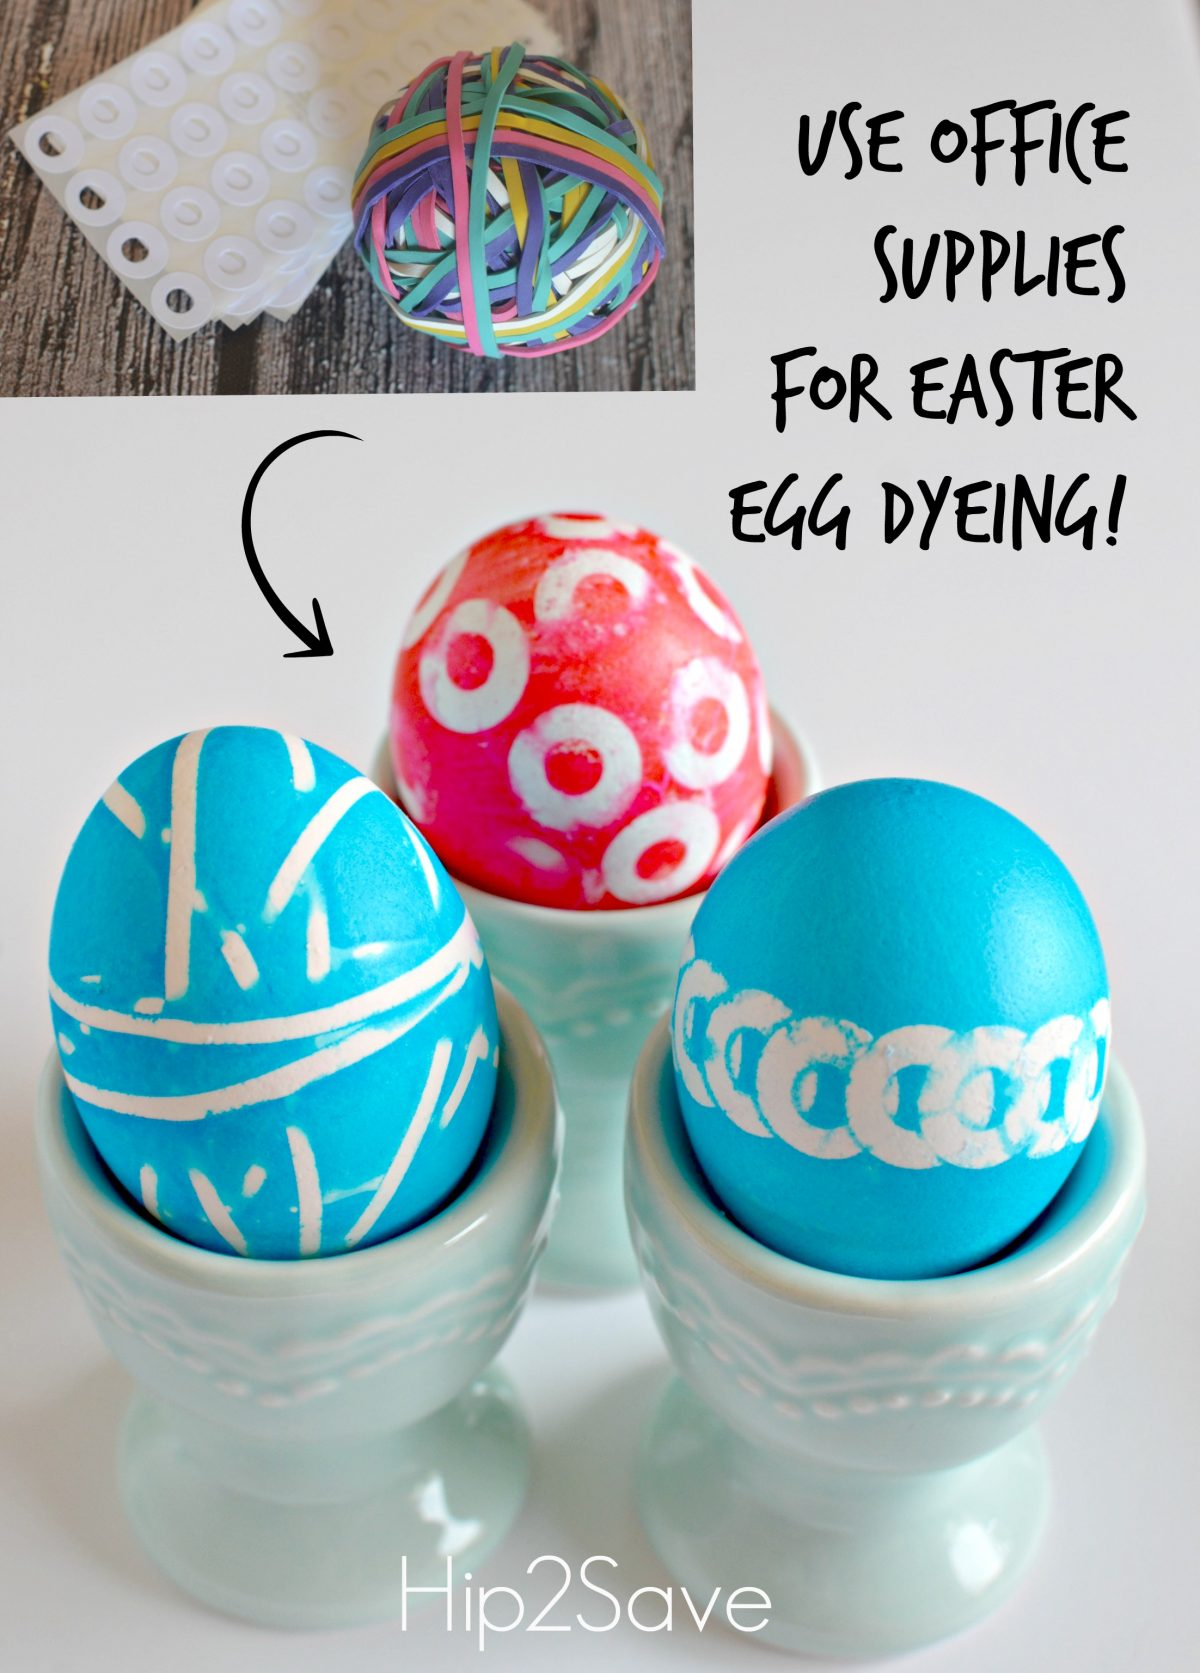 Use Office Supplies for Easter Egg Dying Hip2Save